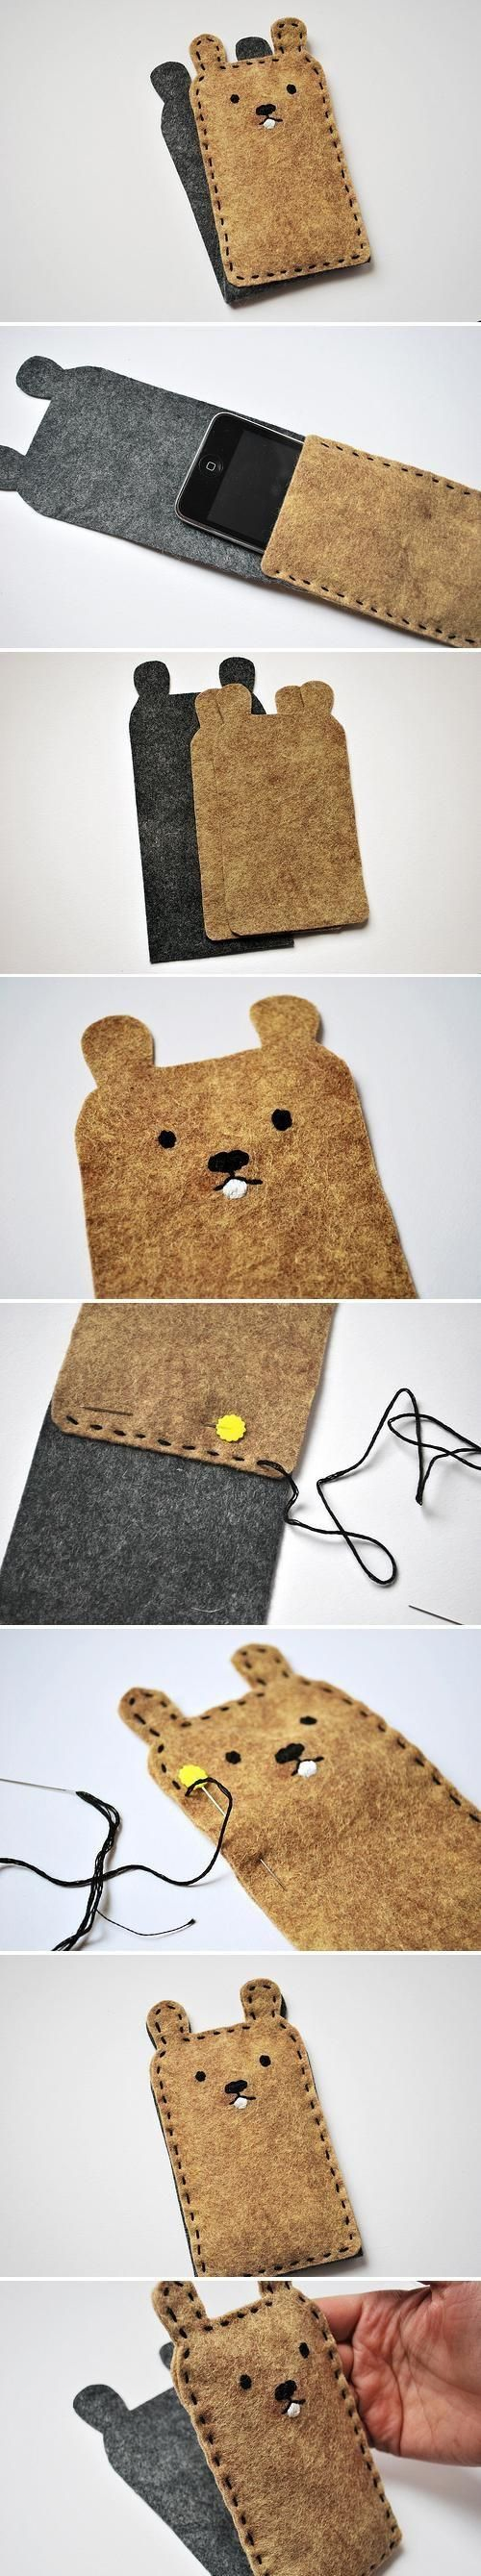 diy for the phone :)